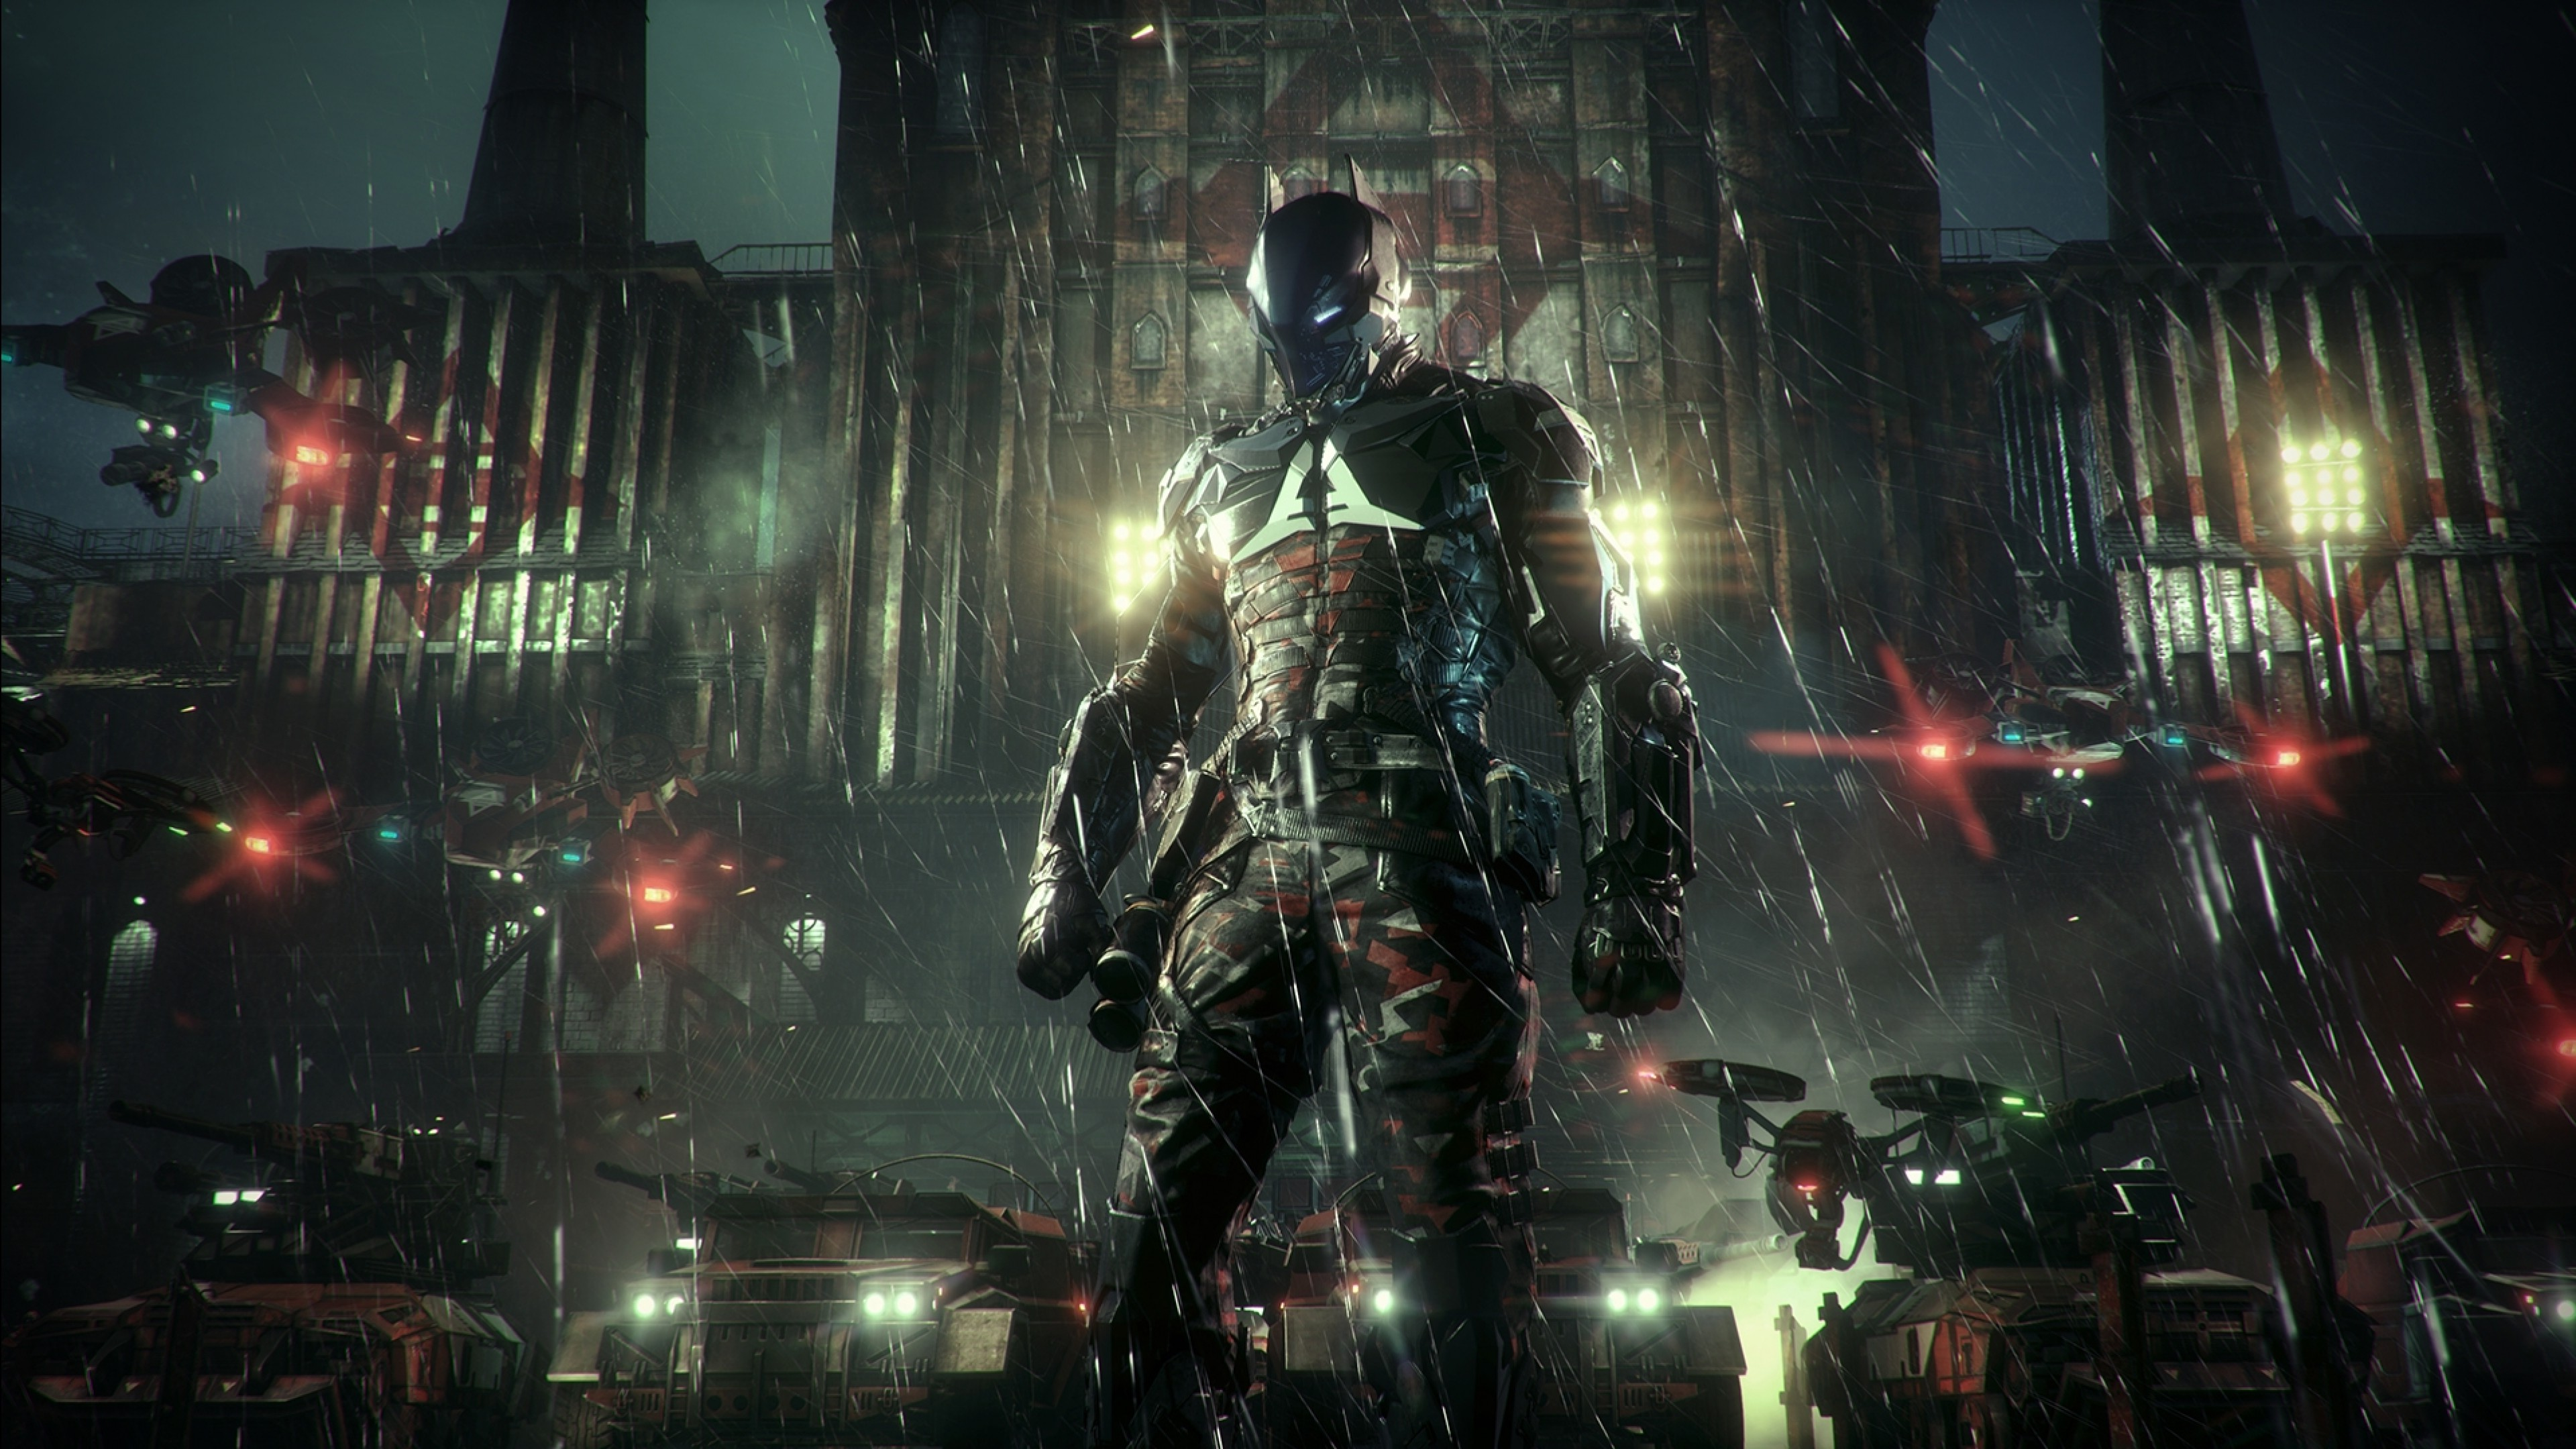 Batman Arkham Knight Rocksteady Studios Batman Batmobile 3840x2160